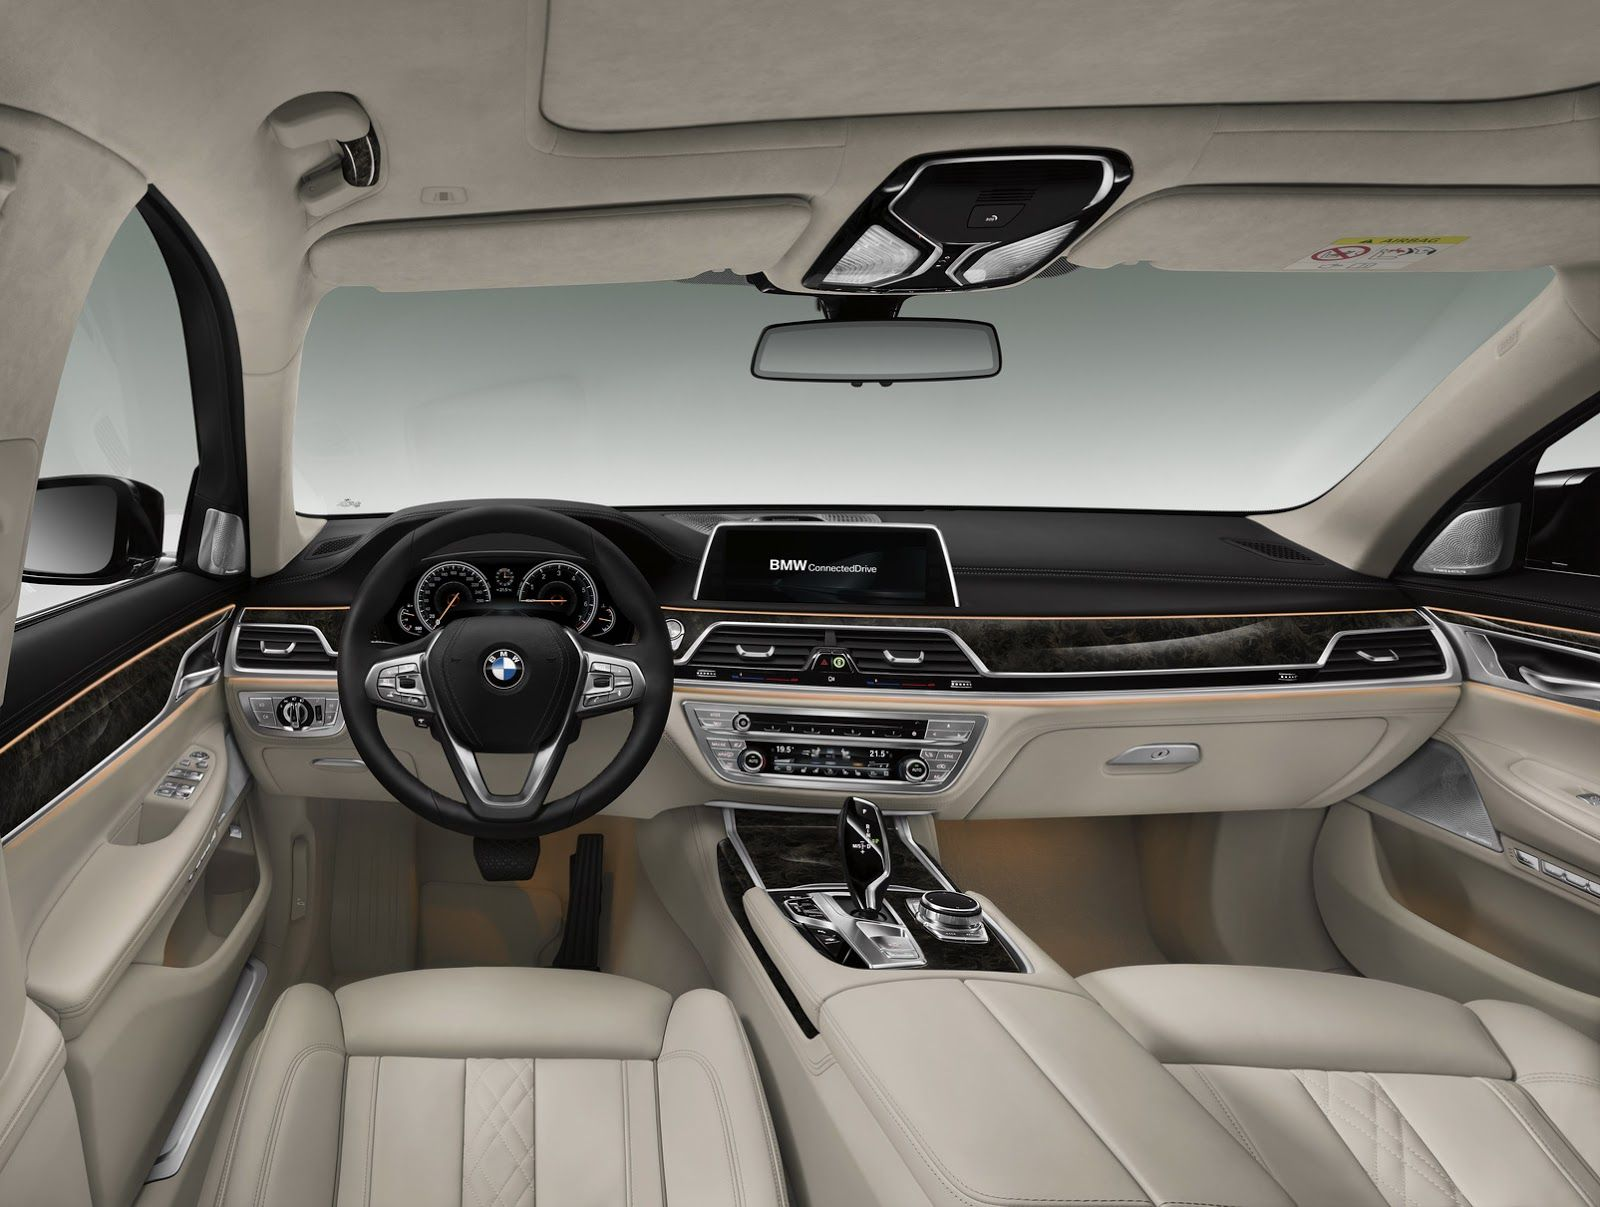 The All New 2016 Bmw 7 Series In 169 Photos And Full Details With